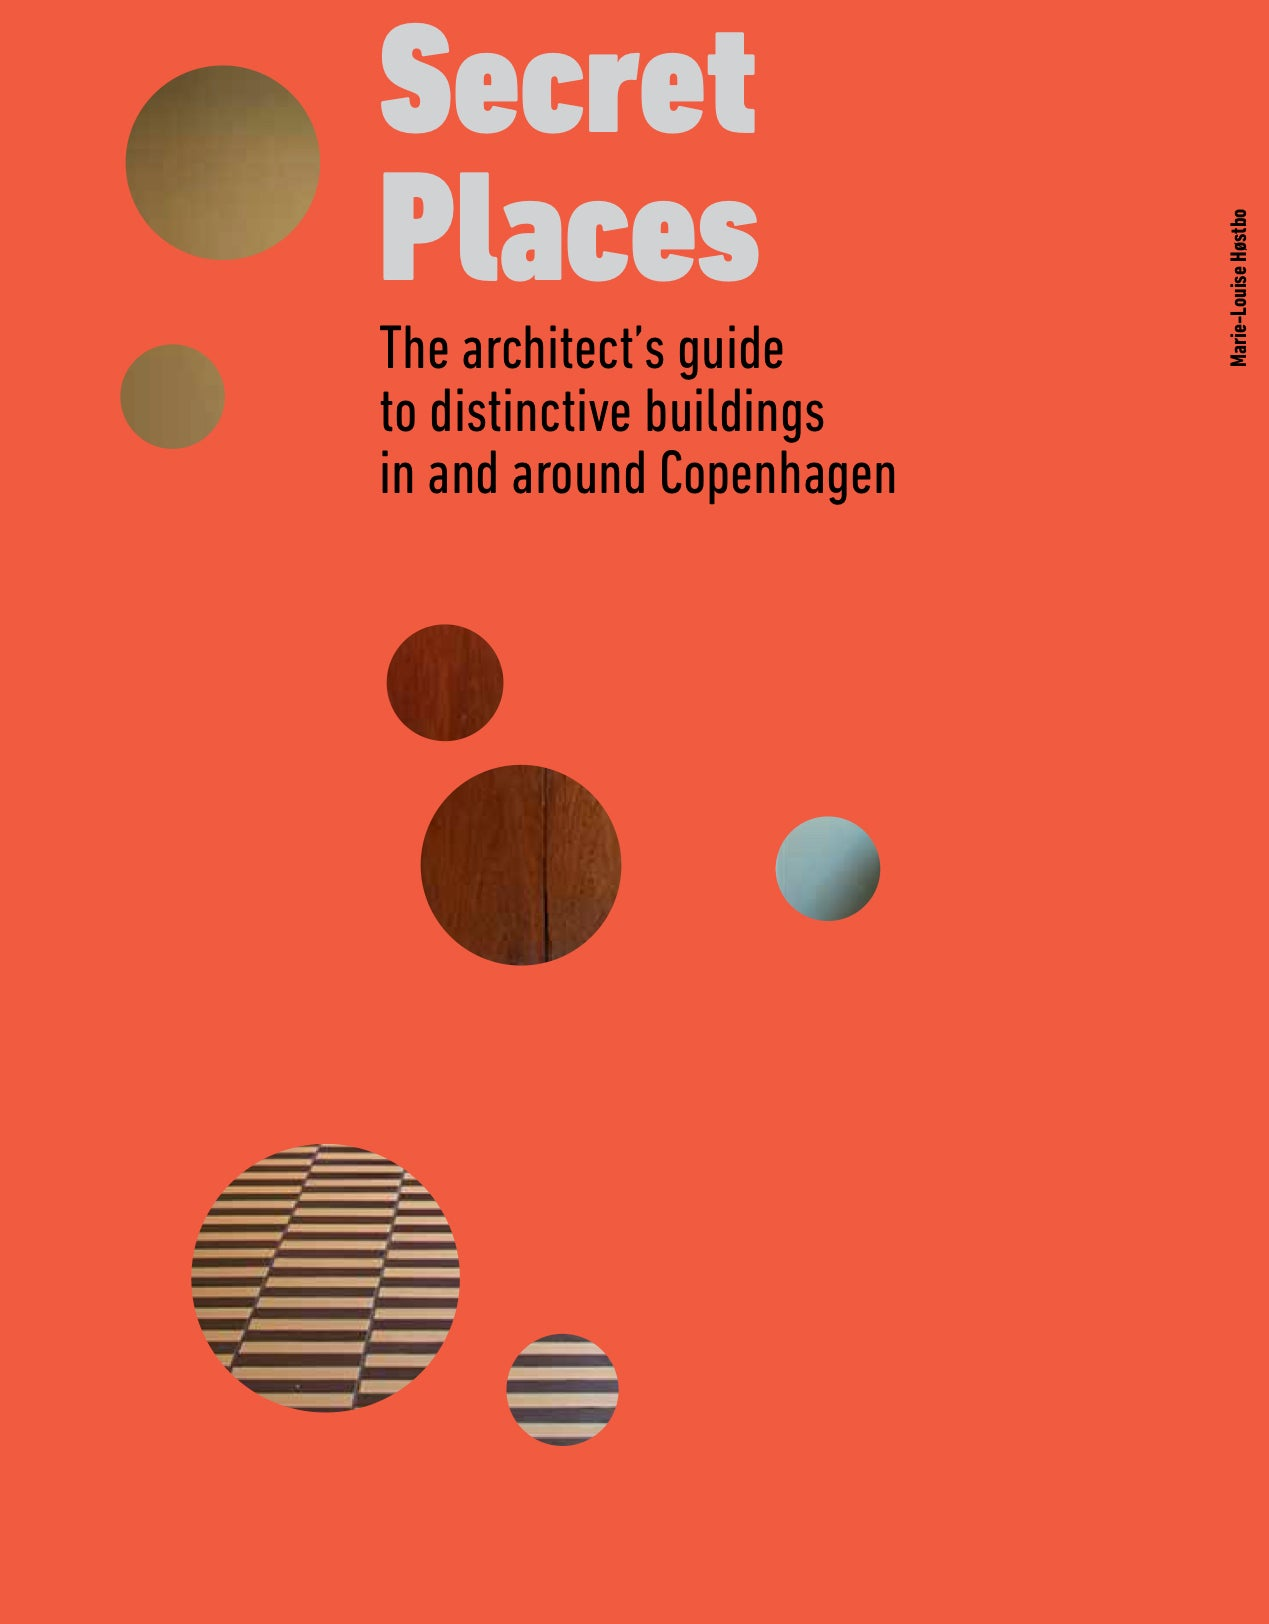 Secret Places - The architect's guide to secret places in and around Copen­hagen